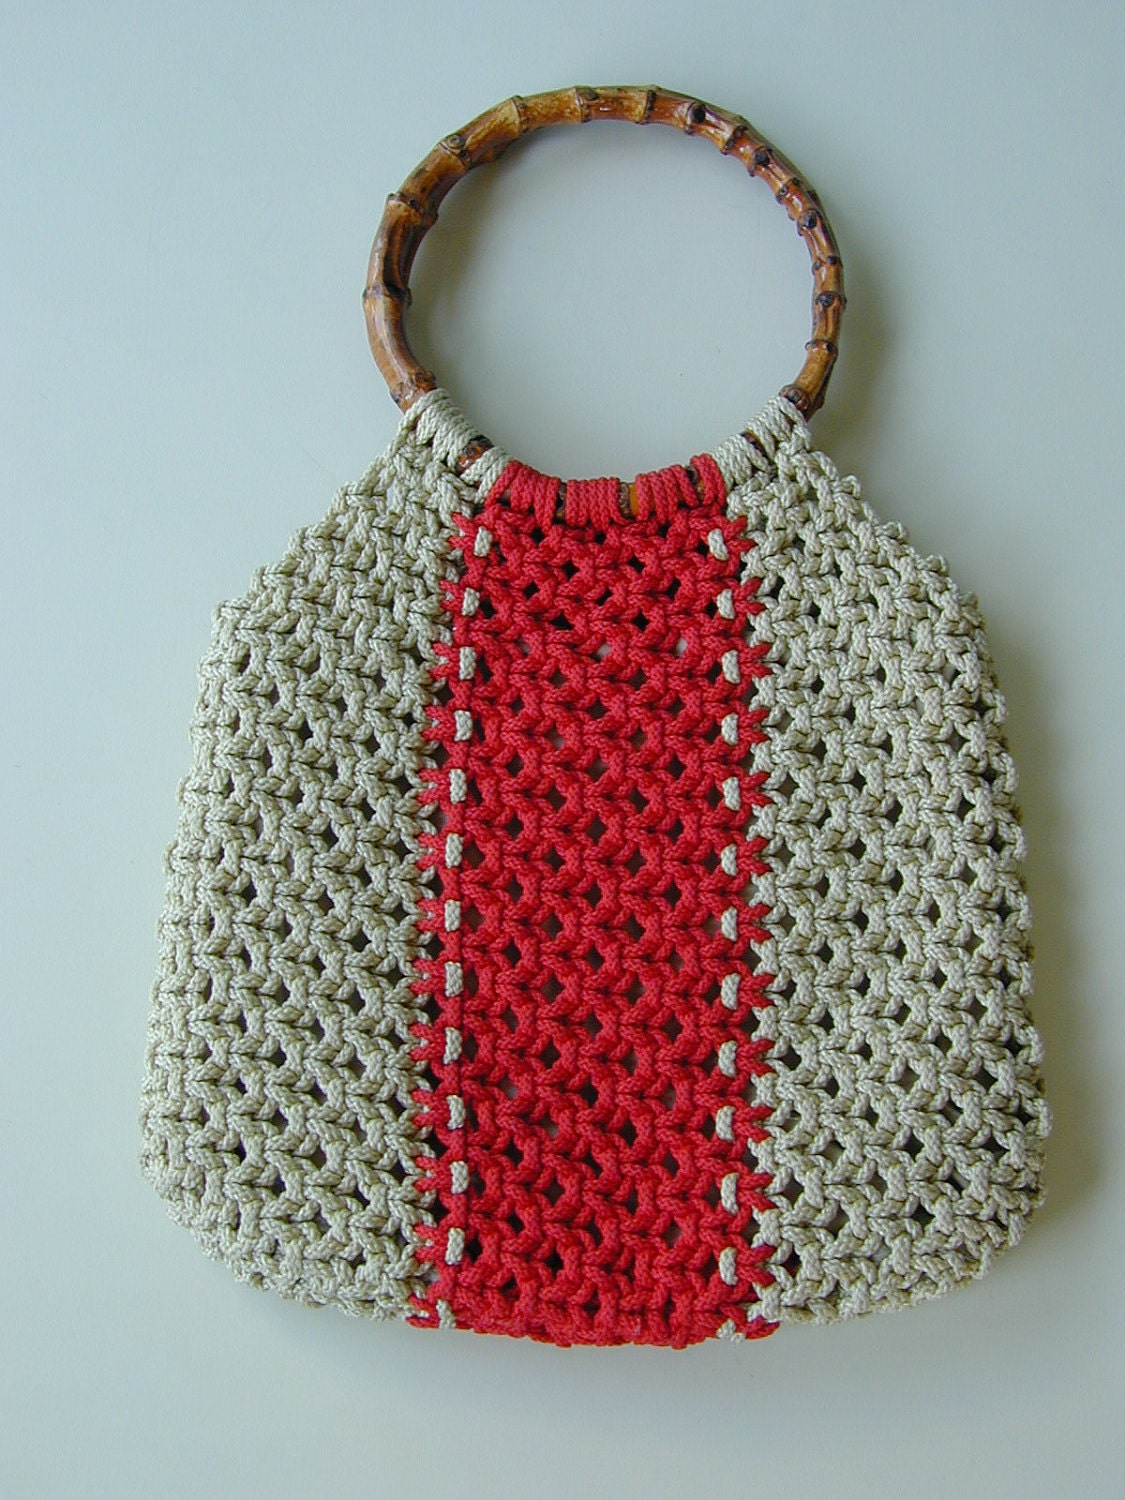 Red Stripe Vintage 70's Macrame Purse with Knotted Twig Handles